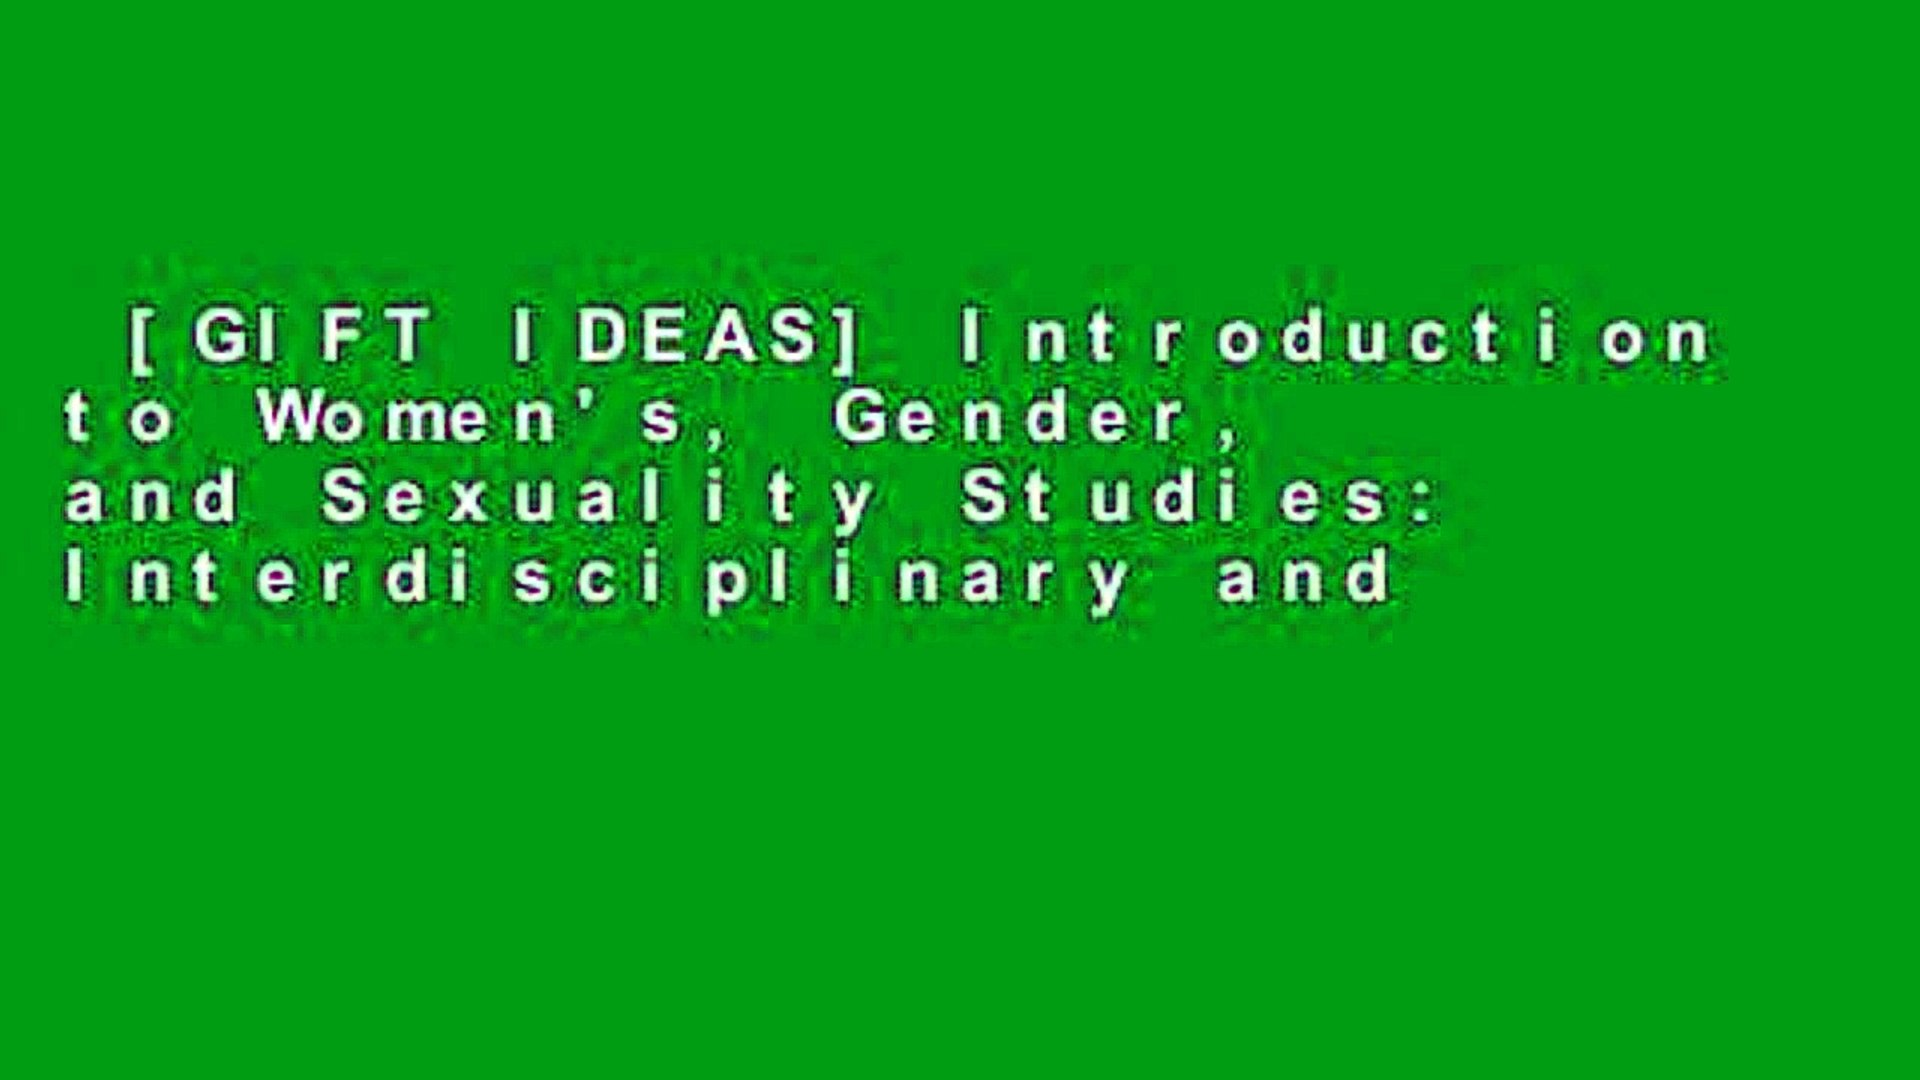 [GIFT IDEAS] Introduction to Women's, Gender, and Sexuality Studies: Interdisciplinary and